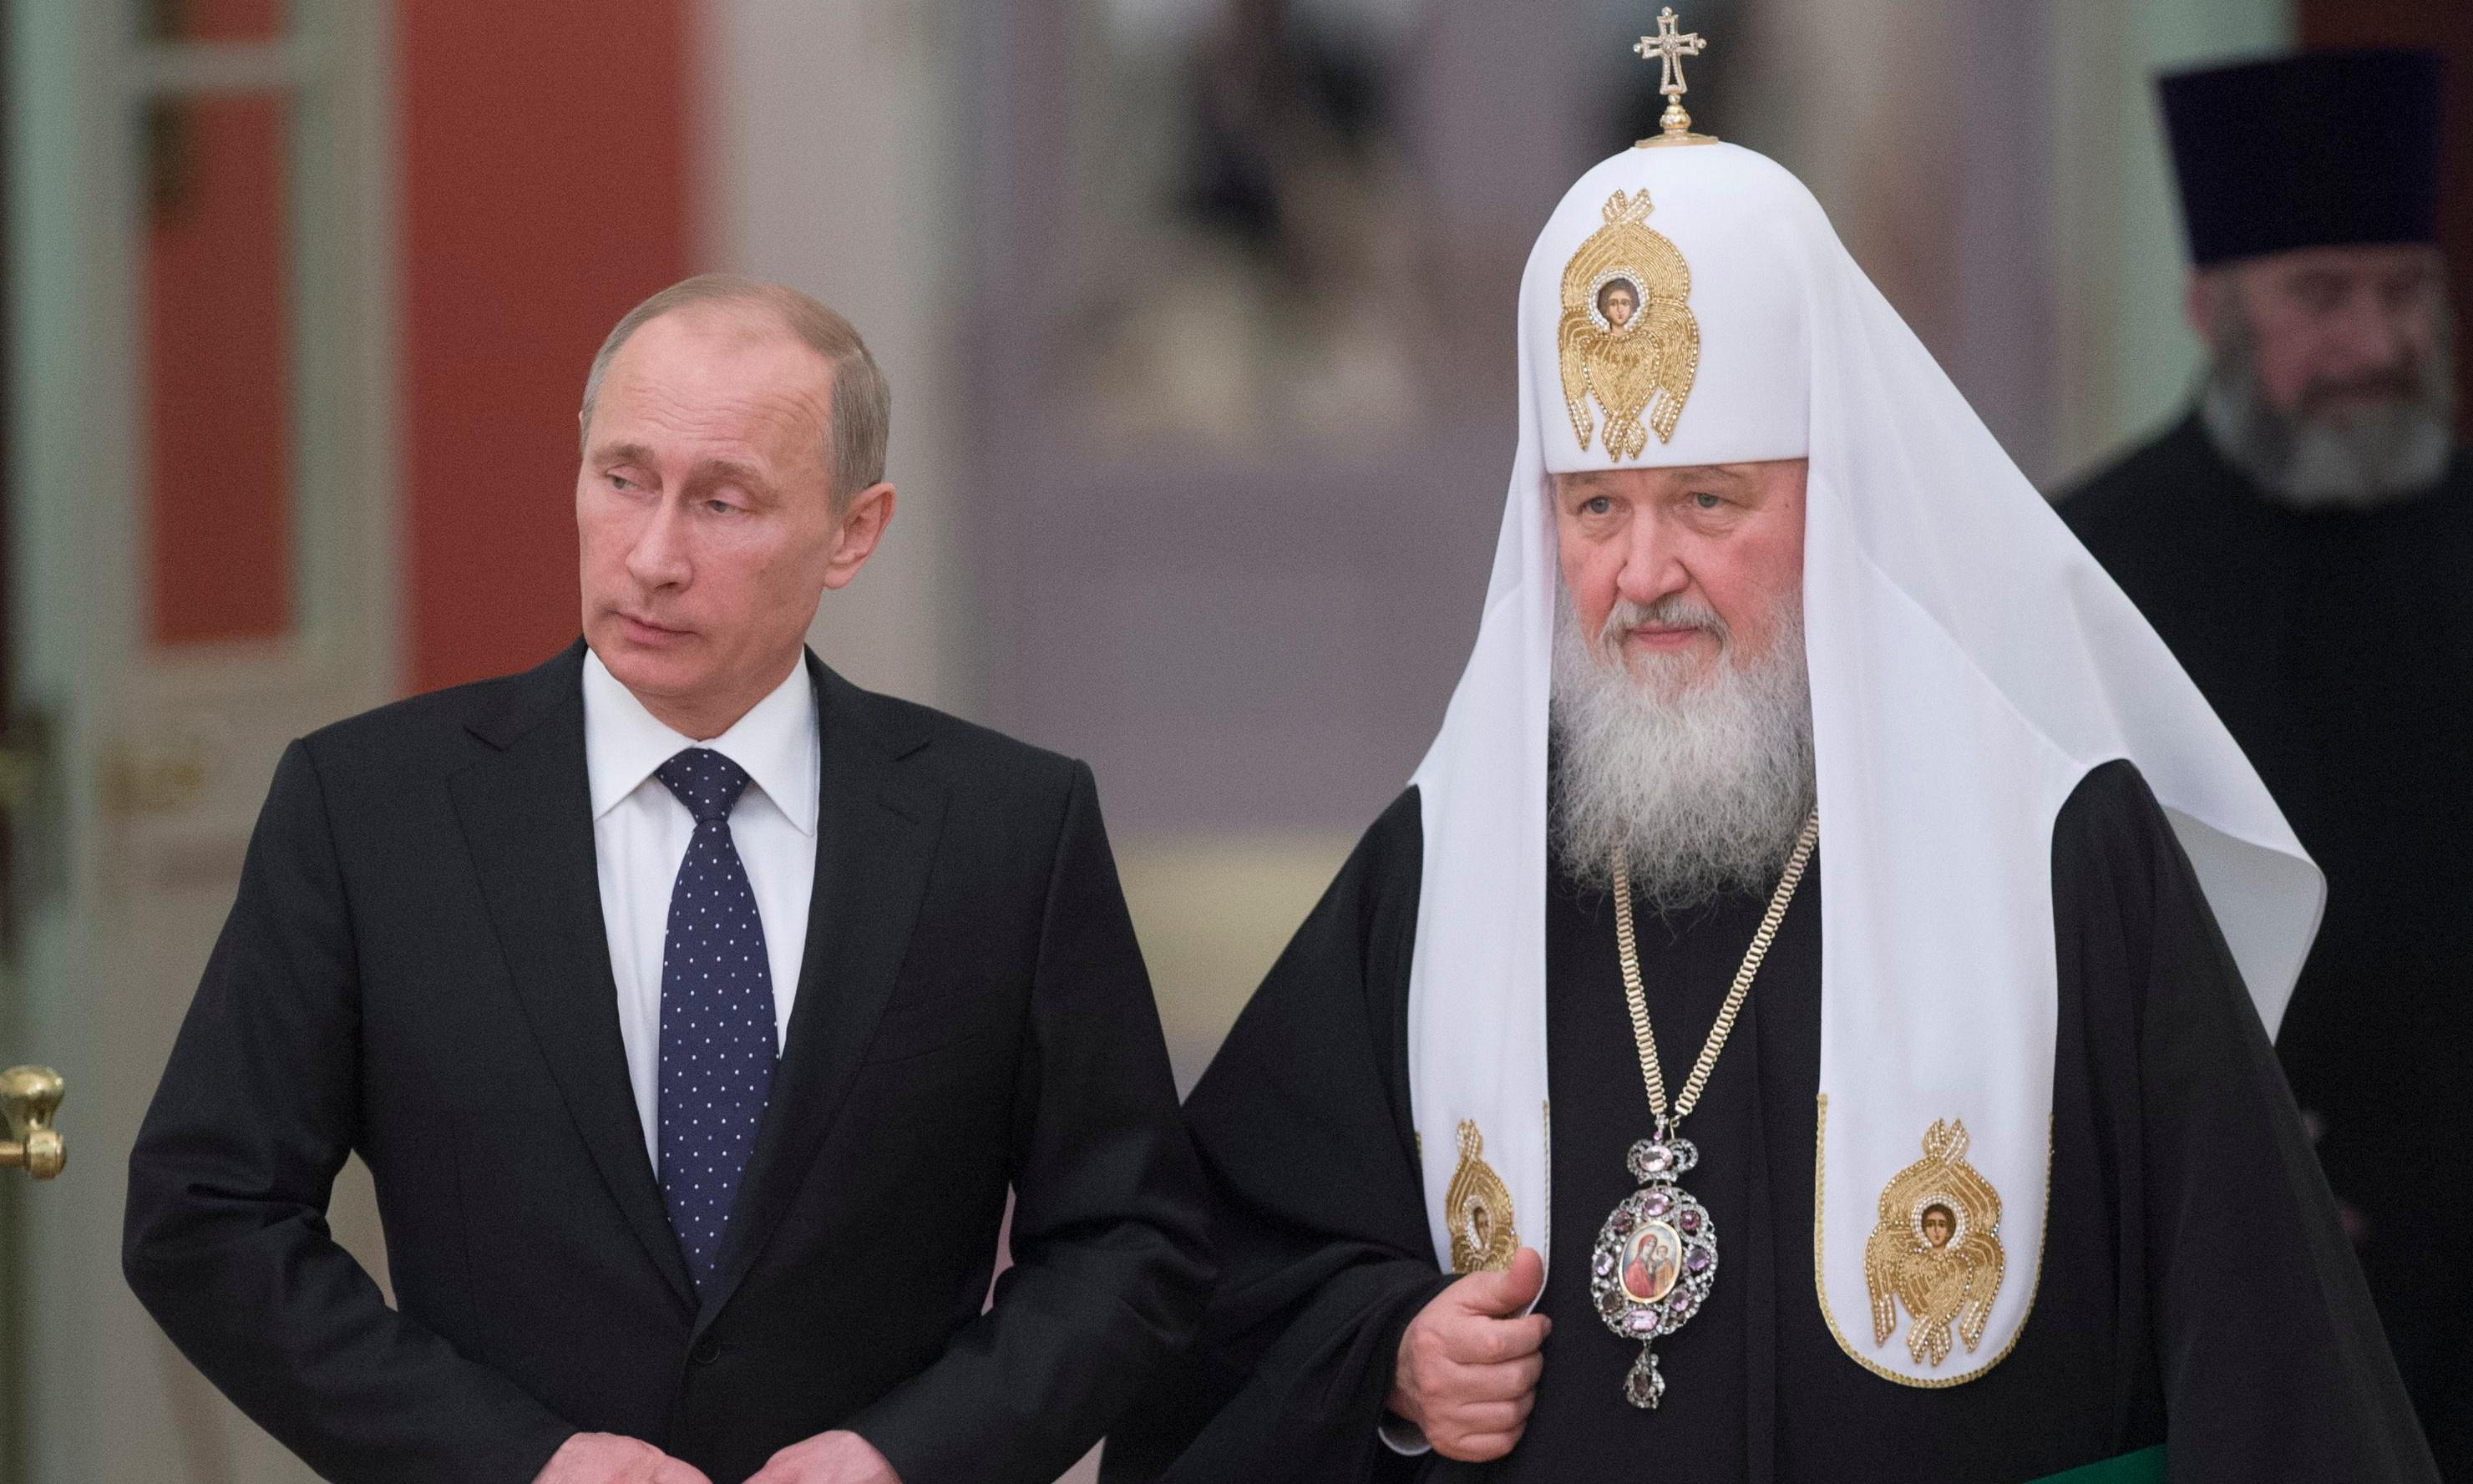 Archbishop's defiance threatens Putin's vision of Russian greatness